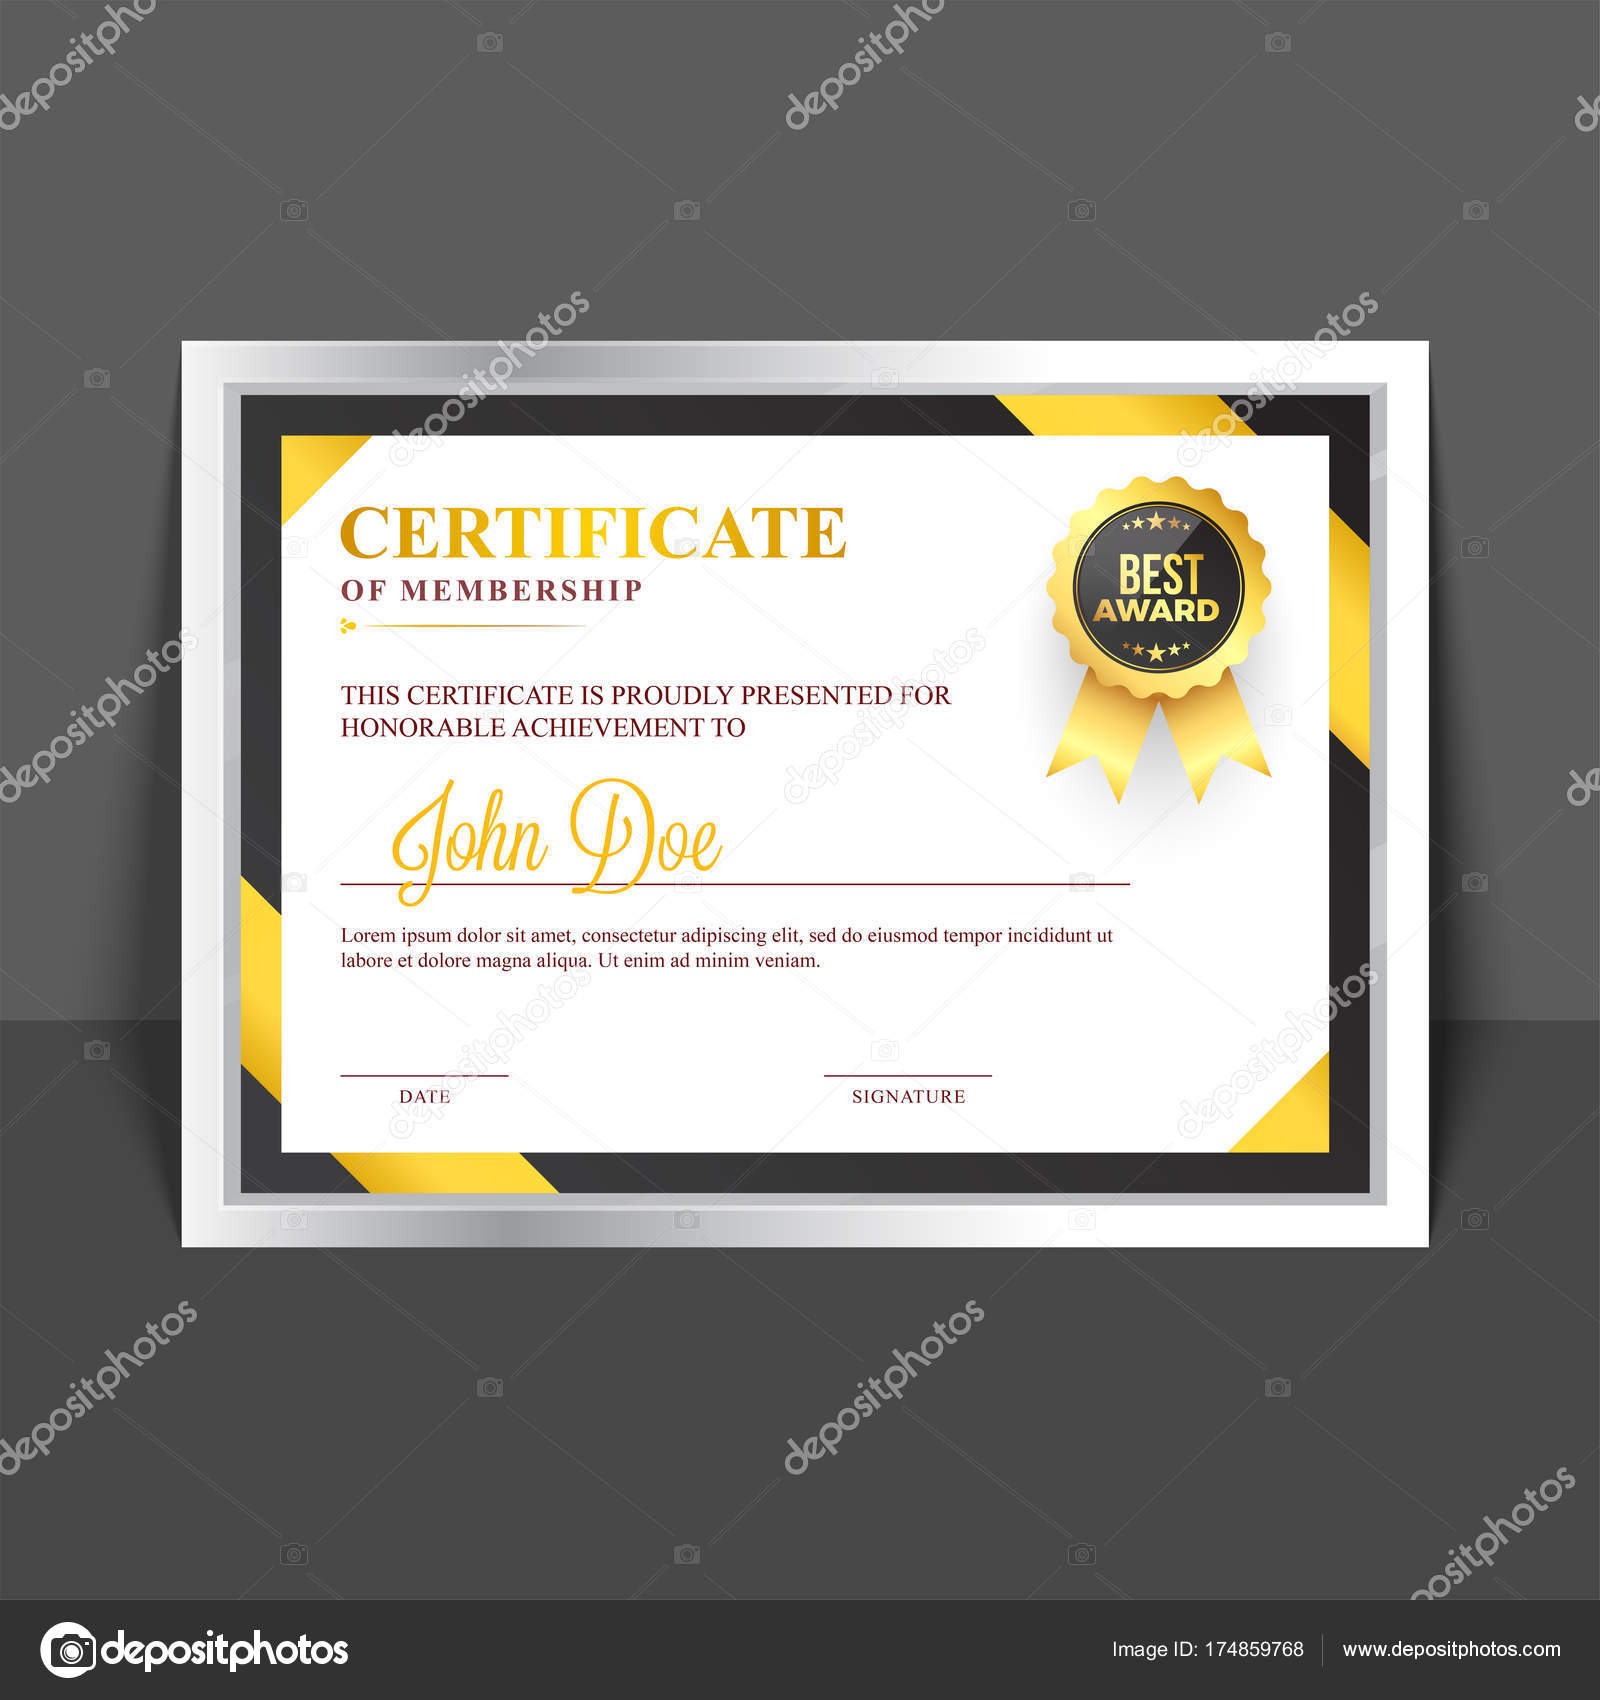 Certificate Of Membership Template With Yellow And Golden Abstra